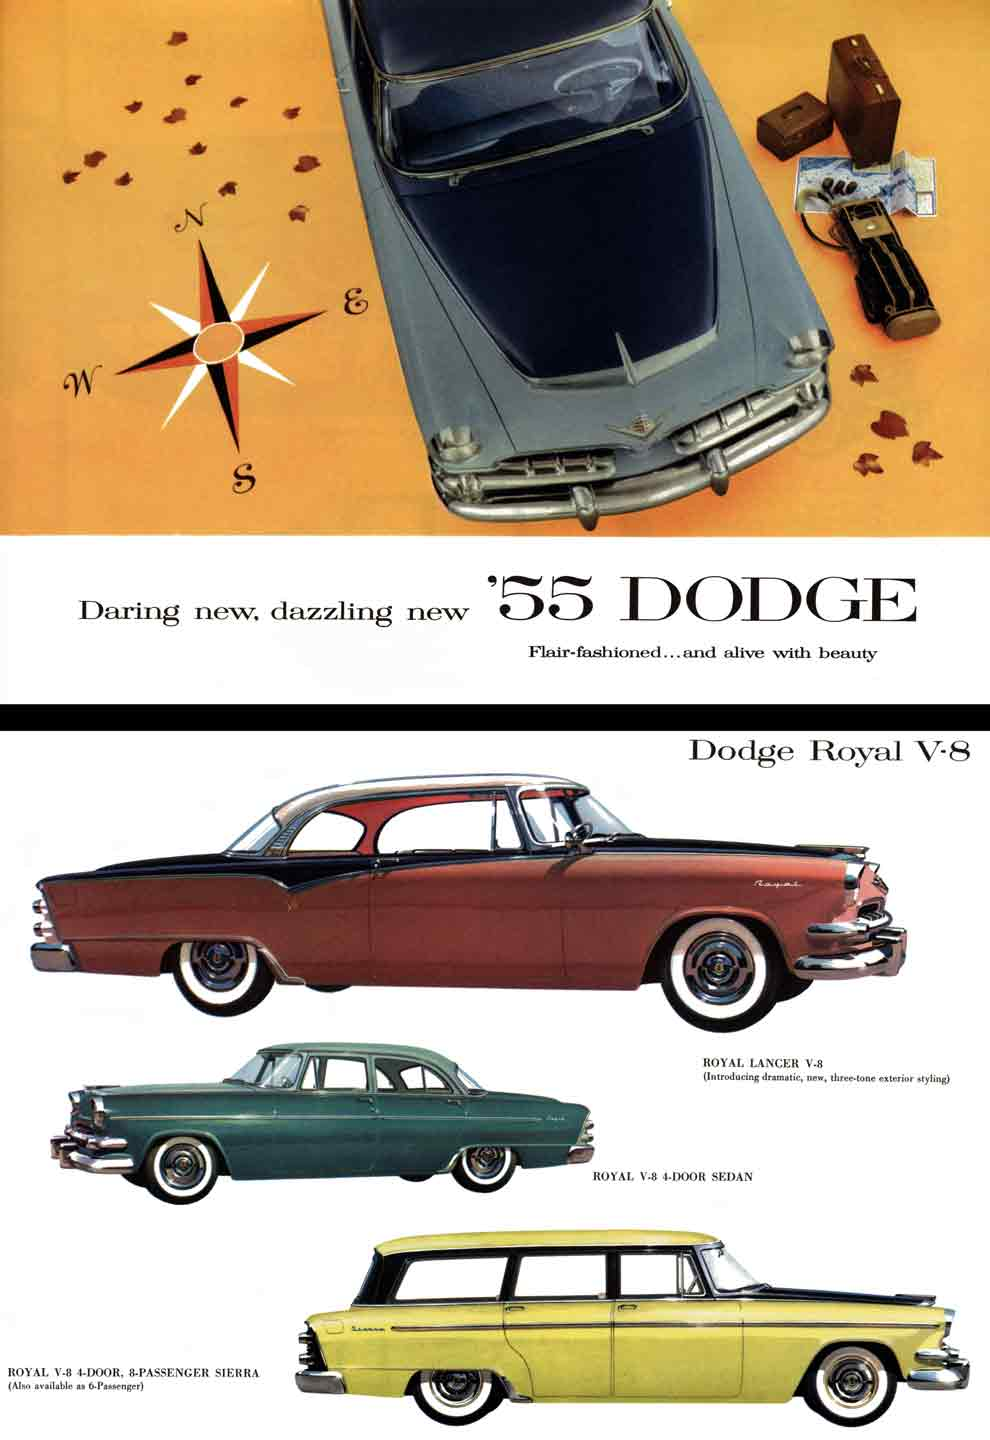 Dodge 1955 - Daring new, dazzling new '55 Dodge - Flair-fashioned and alive with beauty